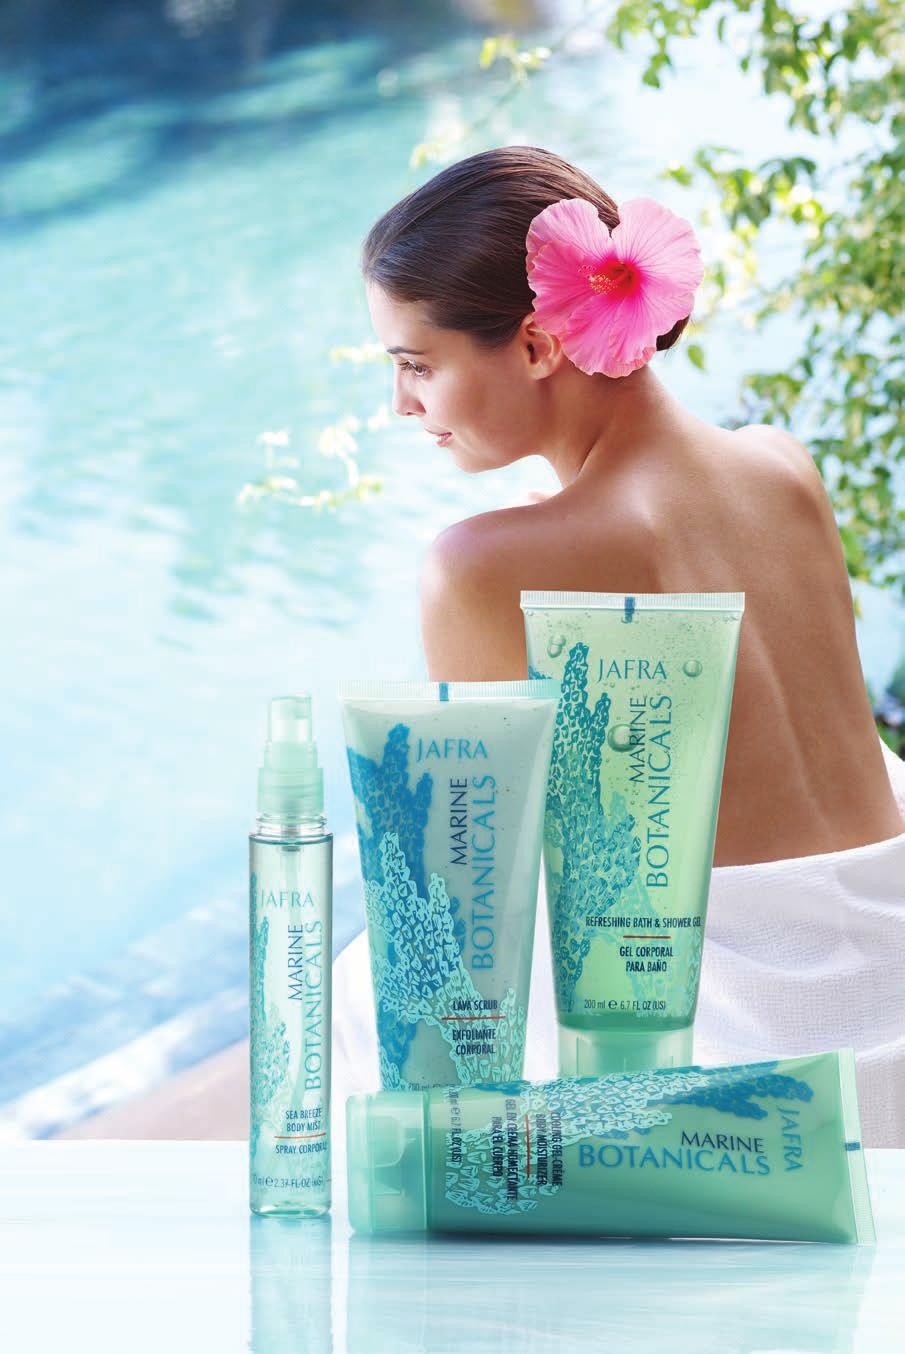 20% OFF MARINE BOTANICALS Find your escape Get the essentials Turn to JAFRA Deodorants for natural ingredients and targeted benefits. Sea Breeze Body Mist 2.37 fl. oz. $14 20597 Lava Scrub 6.